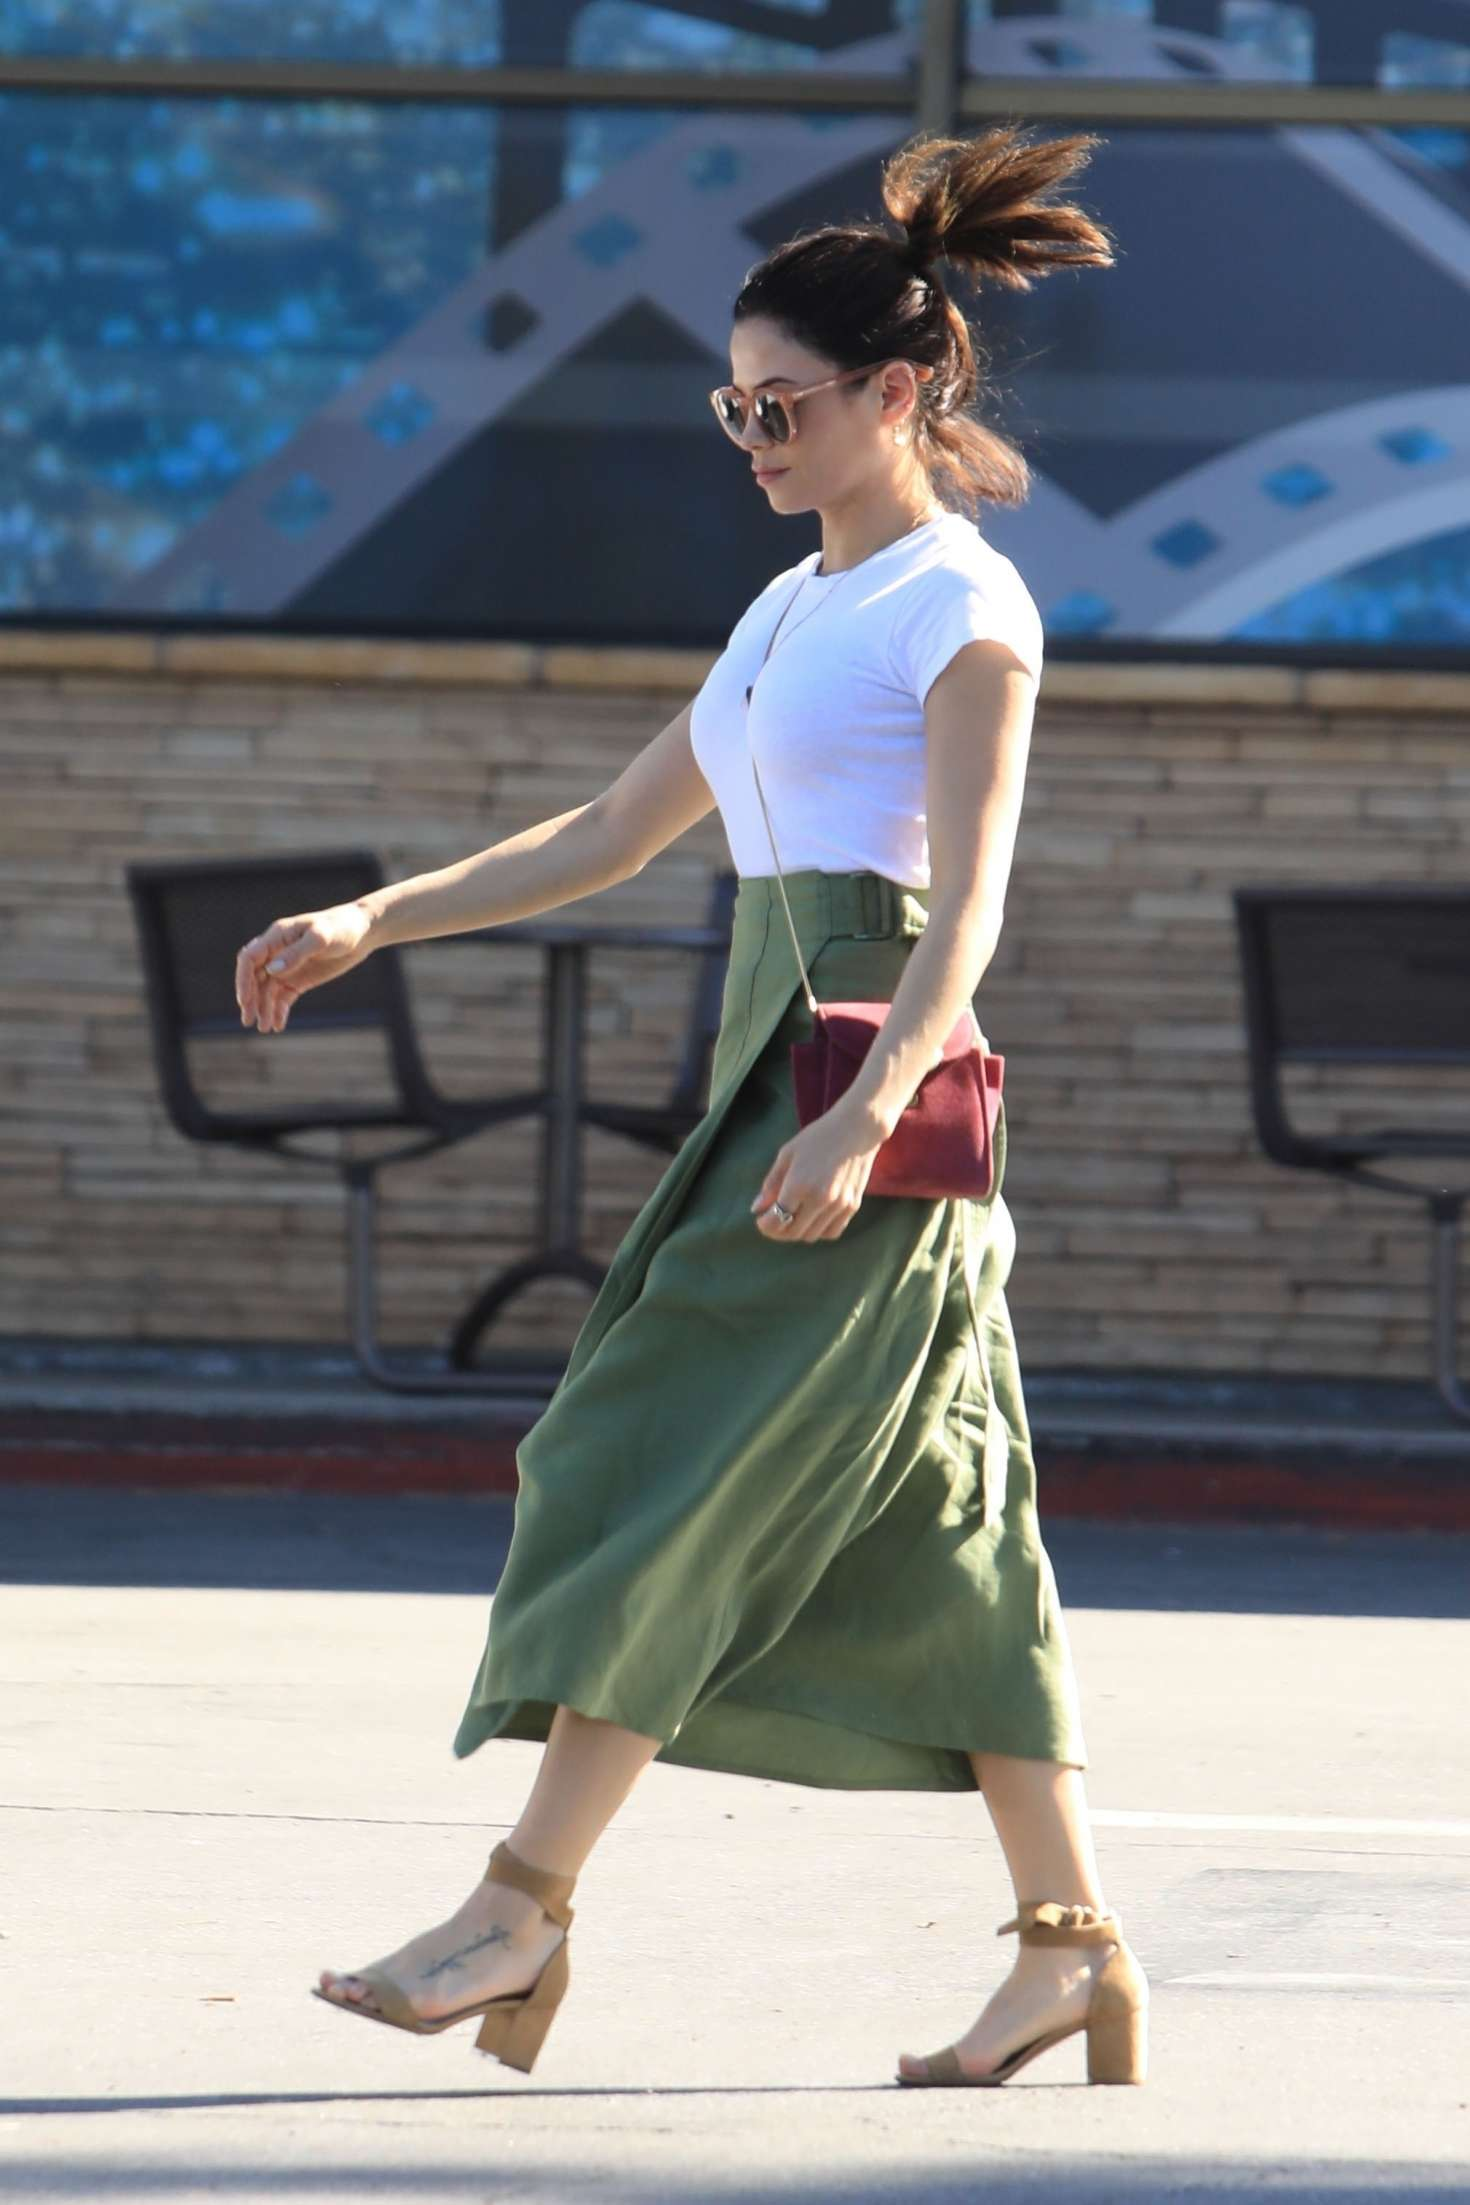 Jenna Dewan 2019 : Jenna Dewan in Green Skirt -02